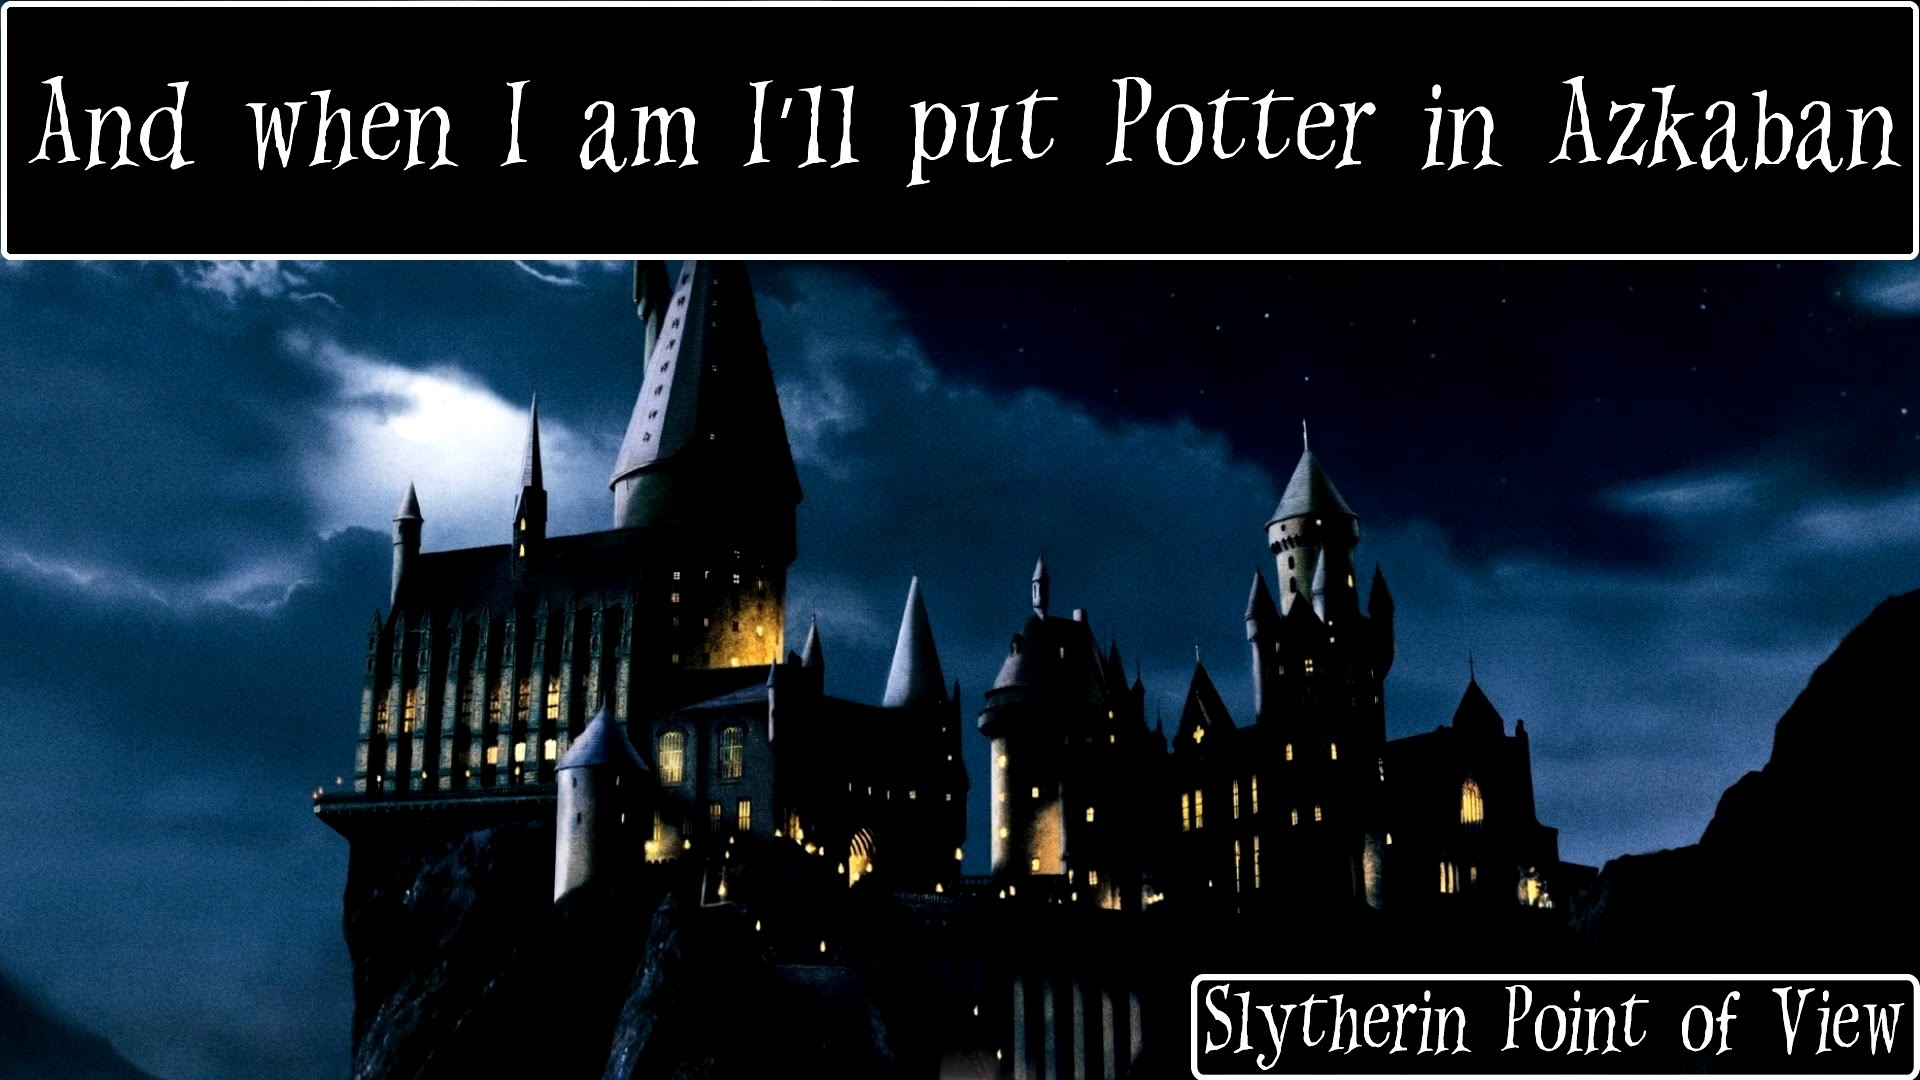 1920x1080 Slytherin Point Of View - Harry Potter Song [On Screen Lyrics]